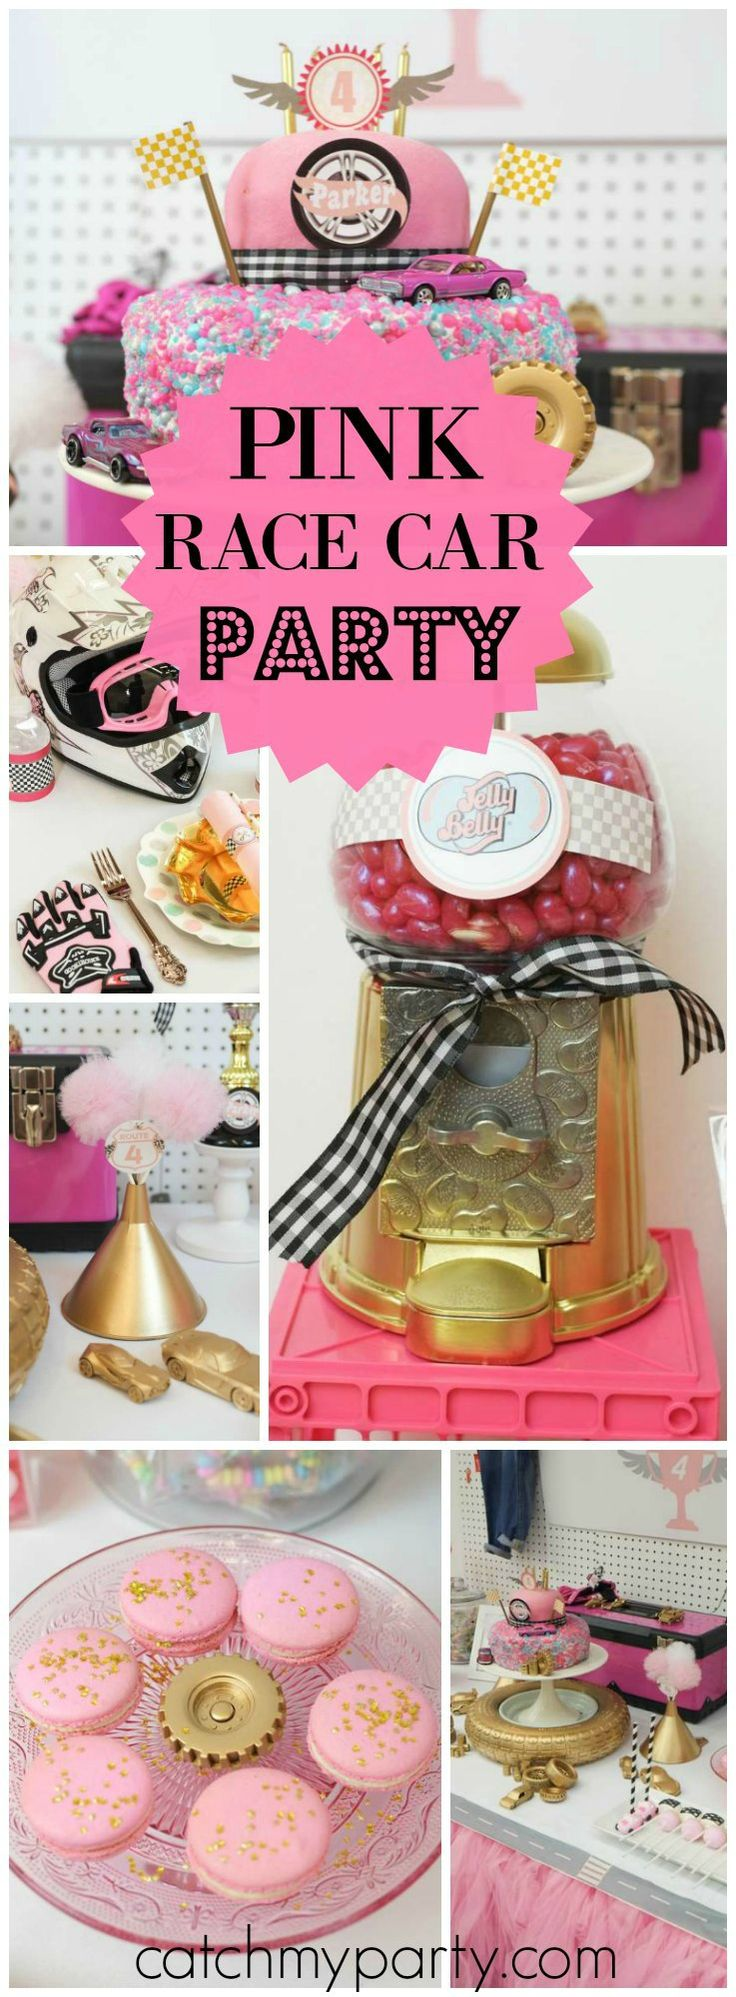 How cool is this gold & pink race car girl birthday party?! See more party ideas at CatchMyParty.com!